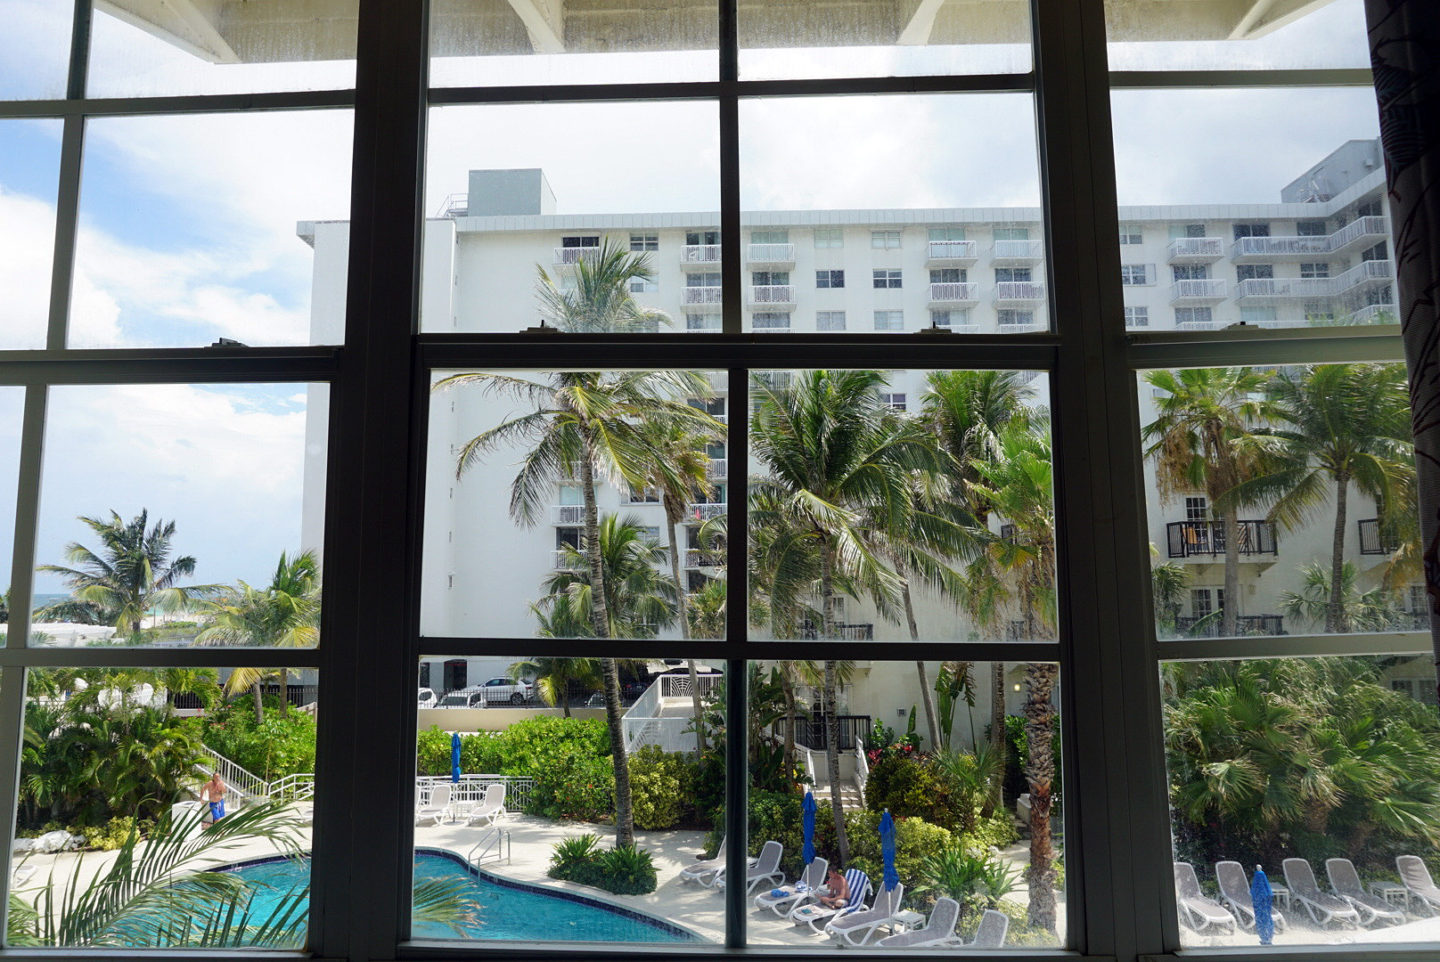 Travel With Me To: Our Miami Hotel